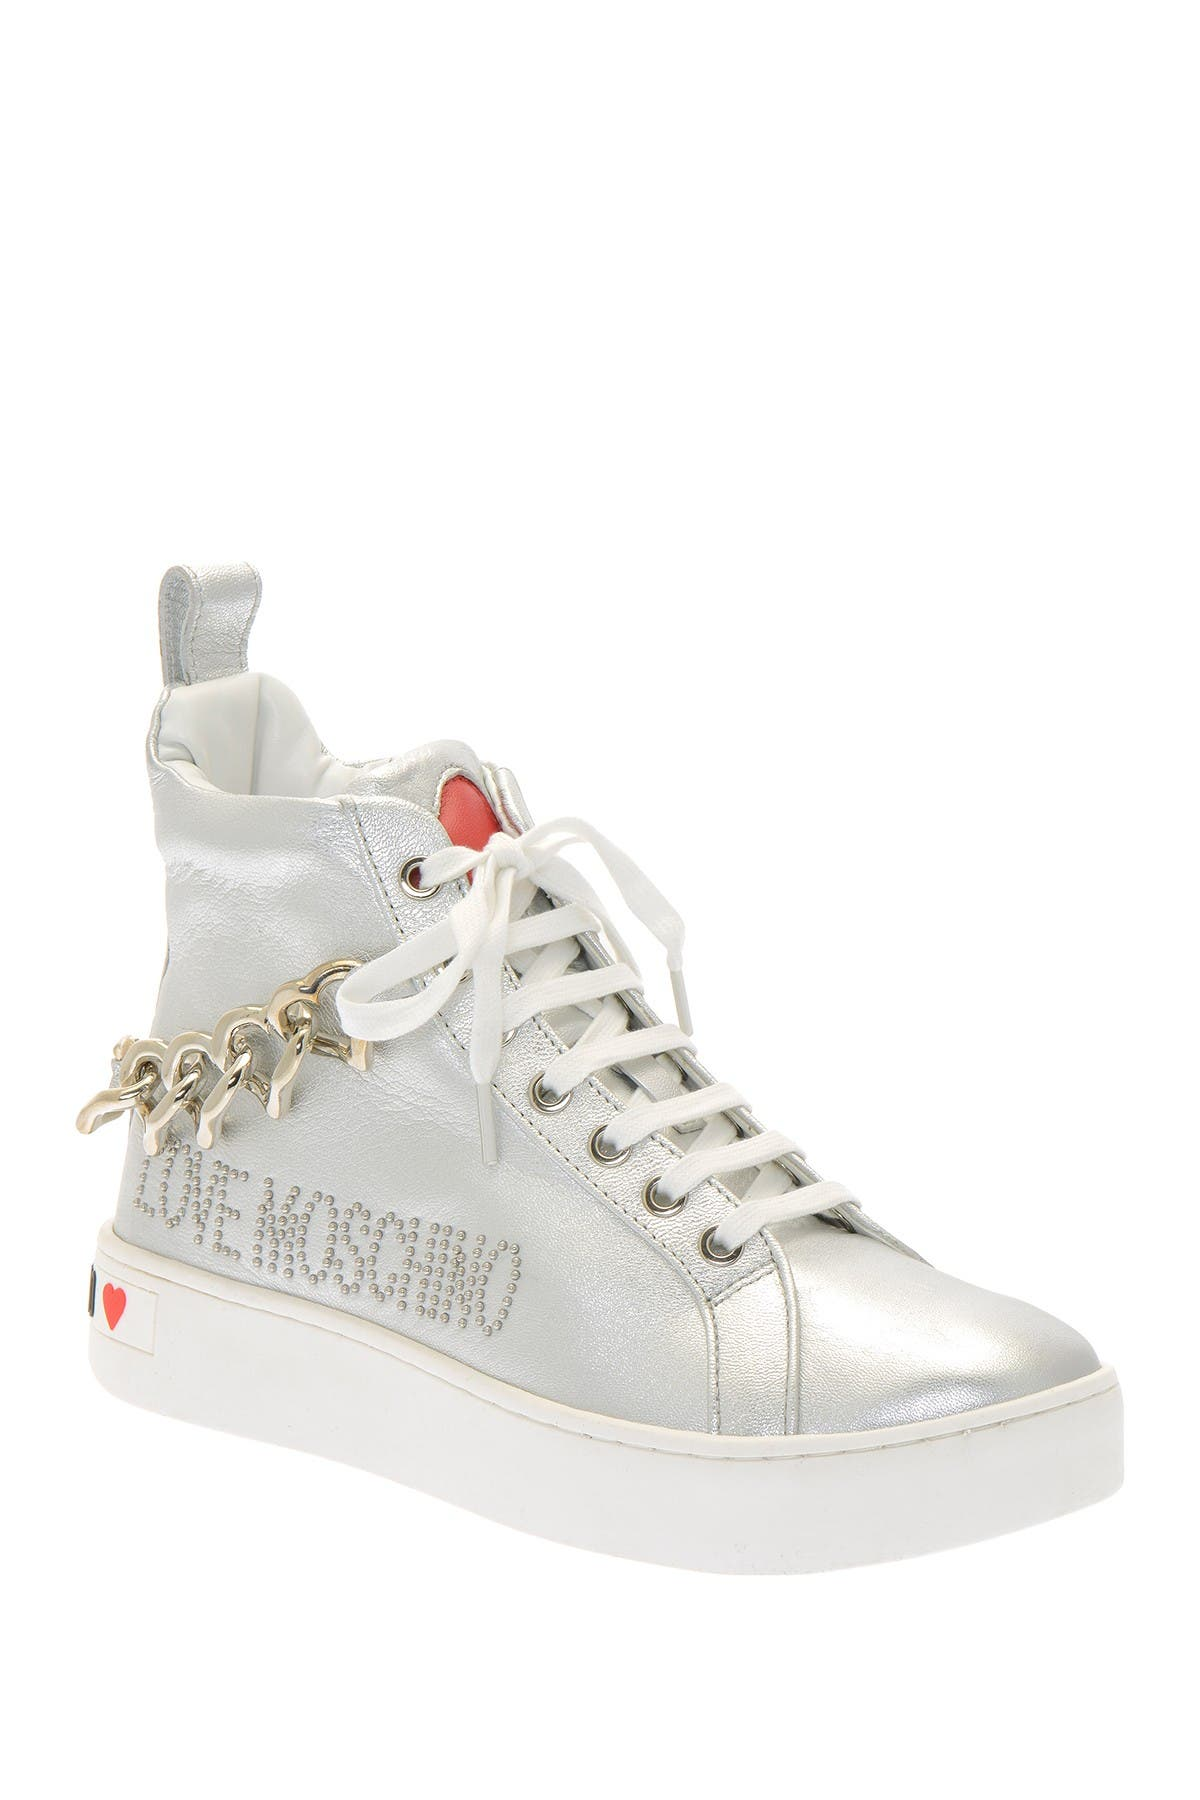 Image of LOVE Moschino Chain Heart Hight Top Sneaker